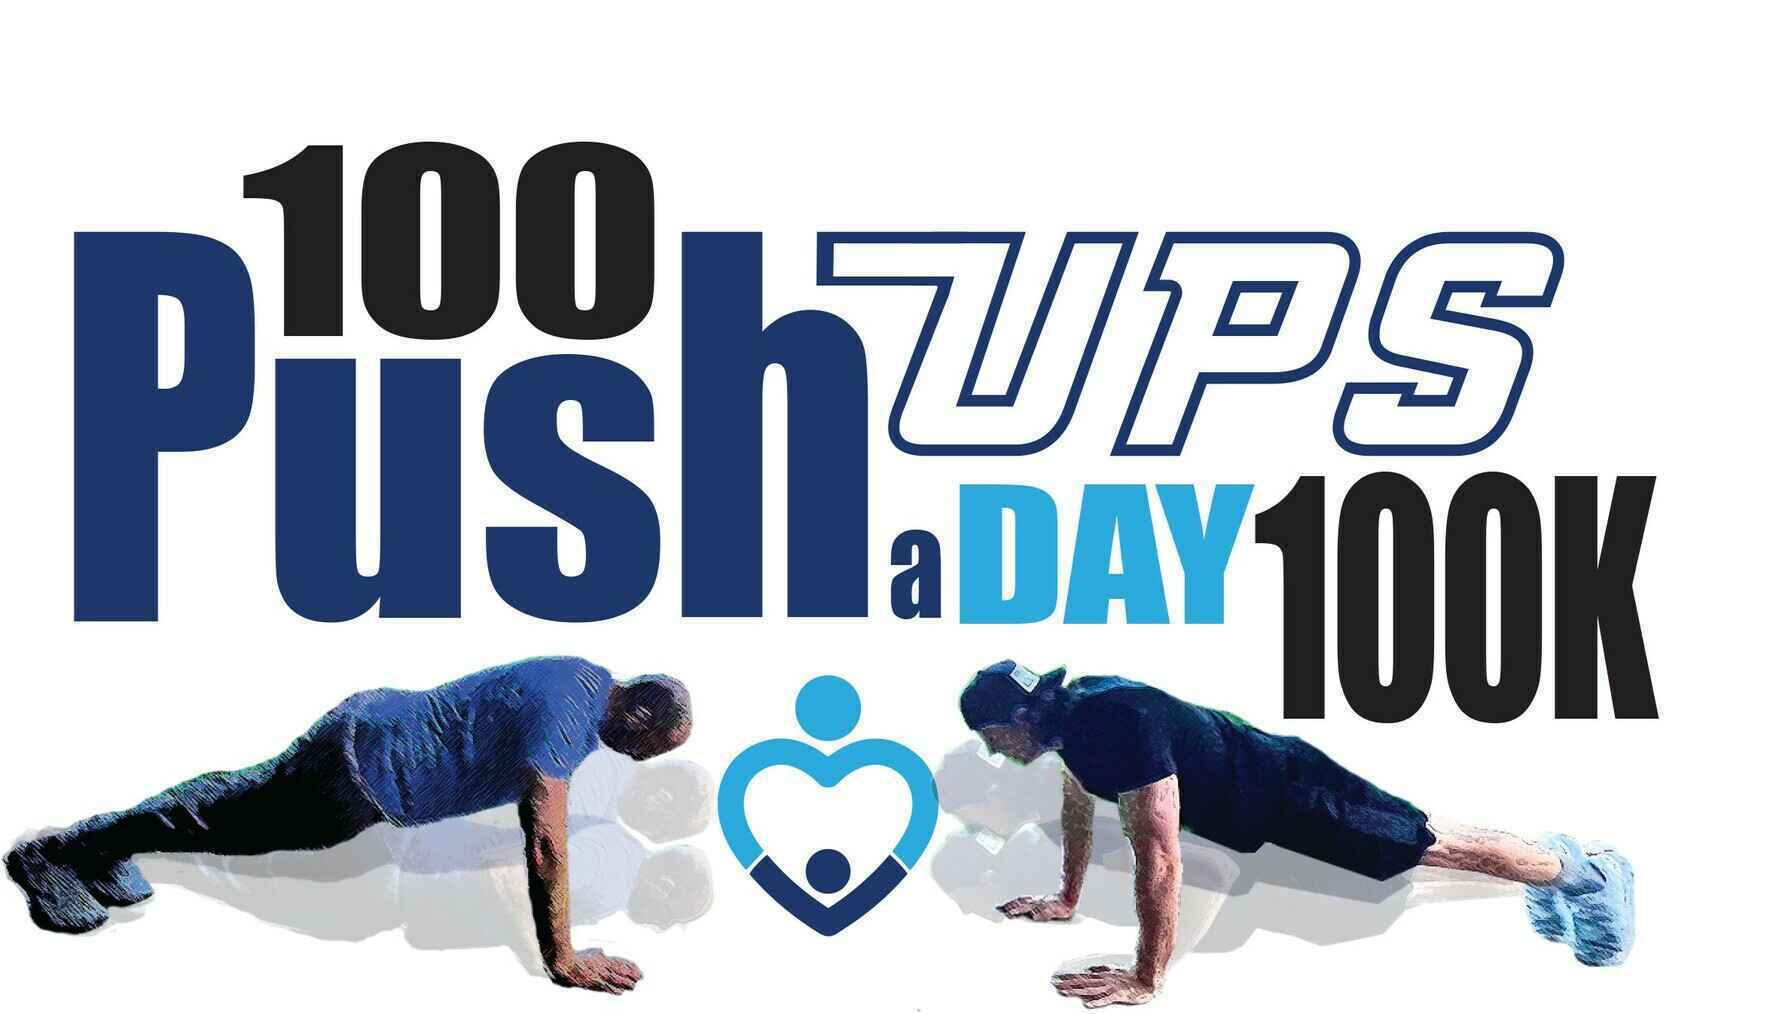 Please Support The Push Up Challenge for Kids with Epilepsy image